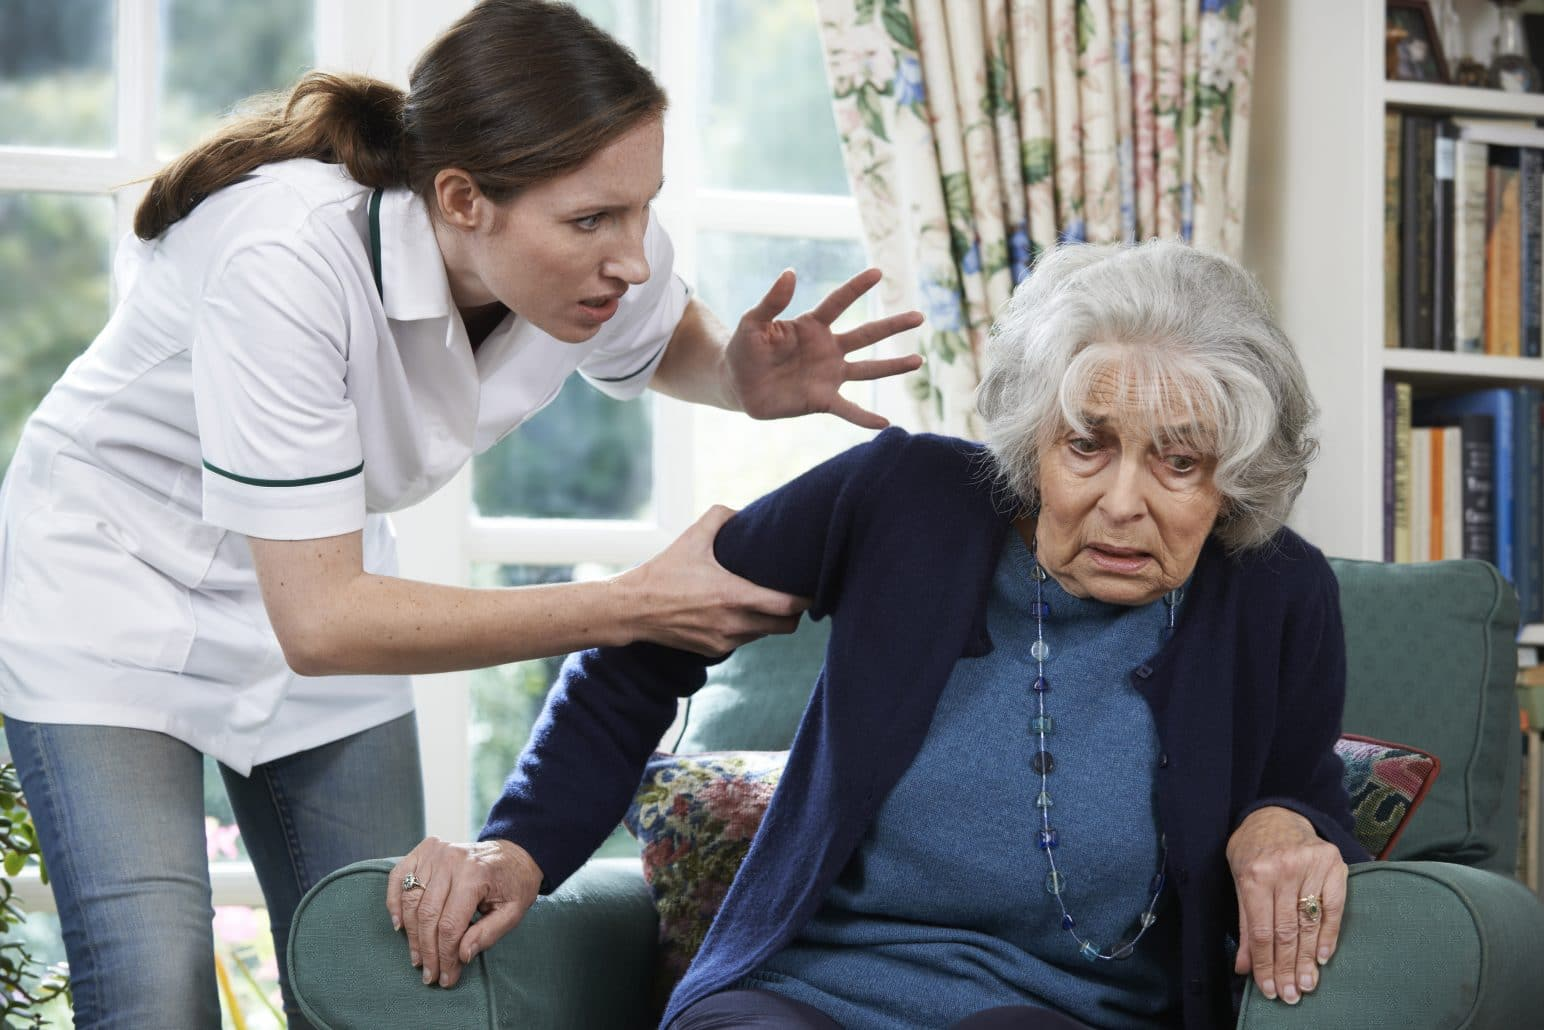 A caregiver commits elder abuse by screaming at a nursing home resident.